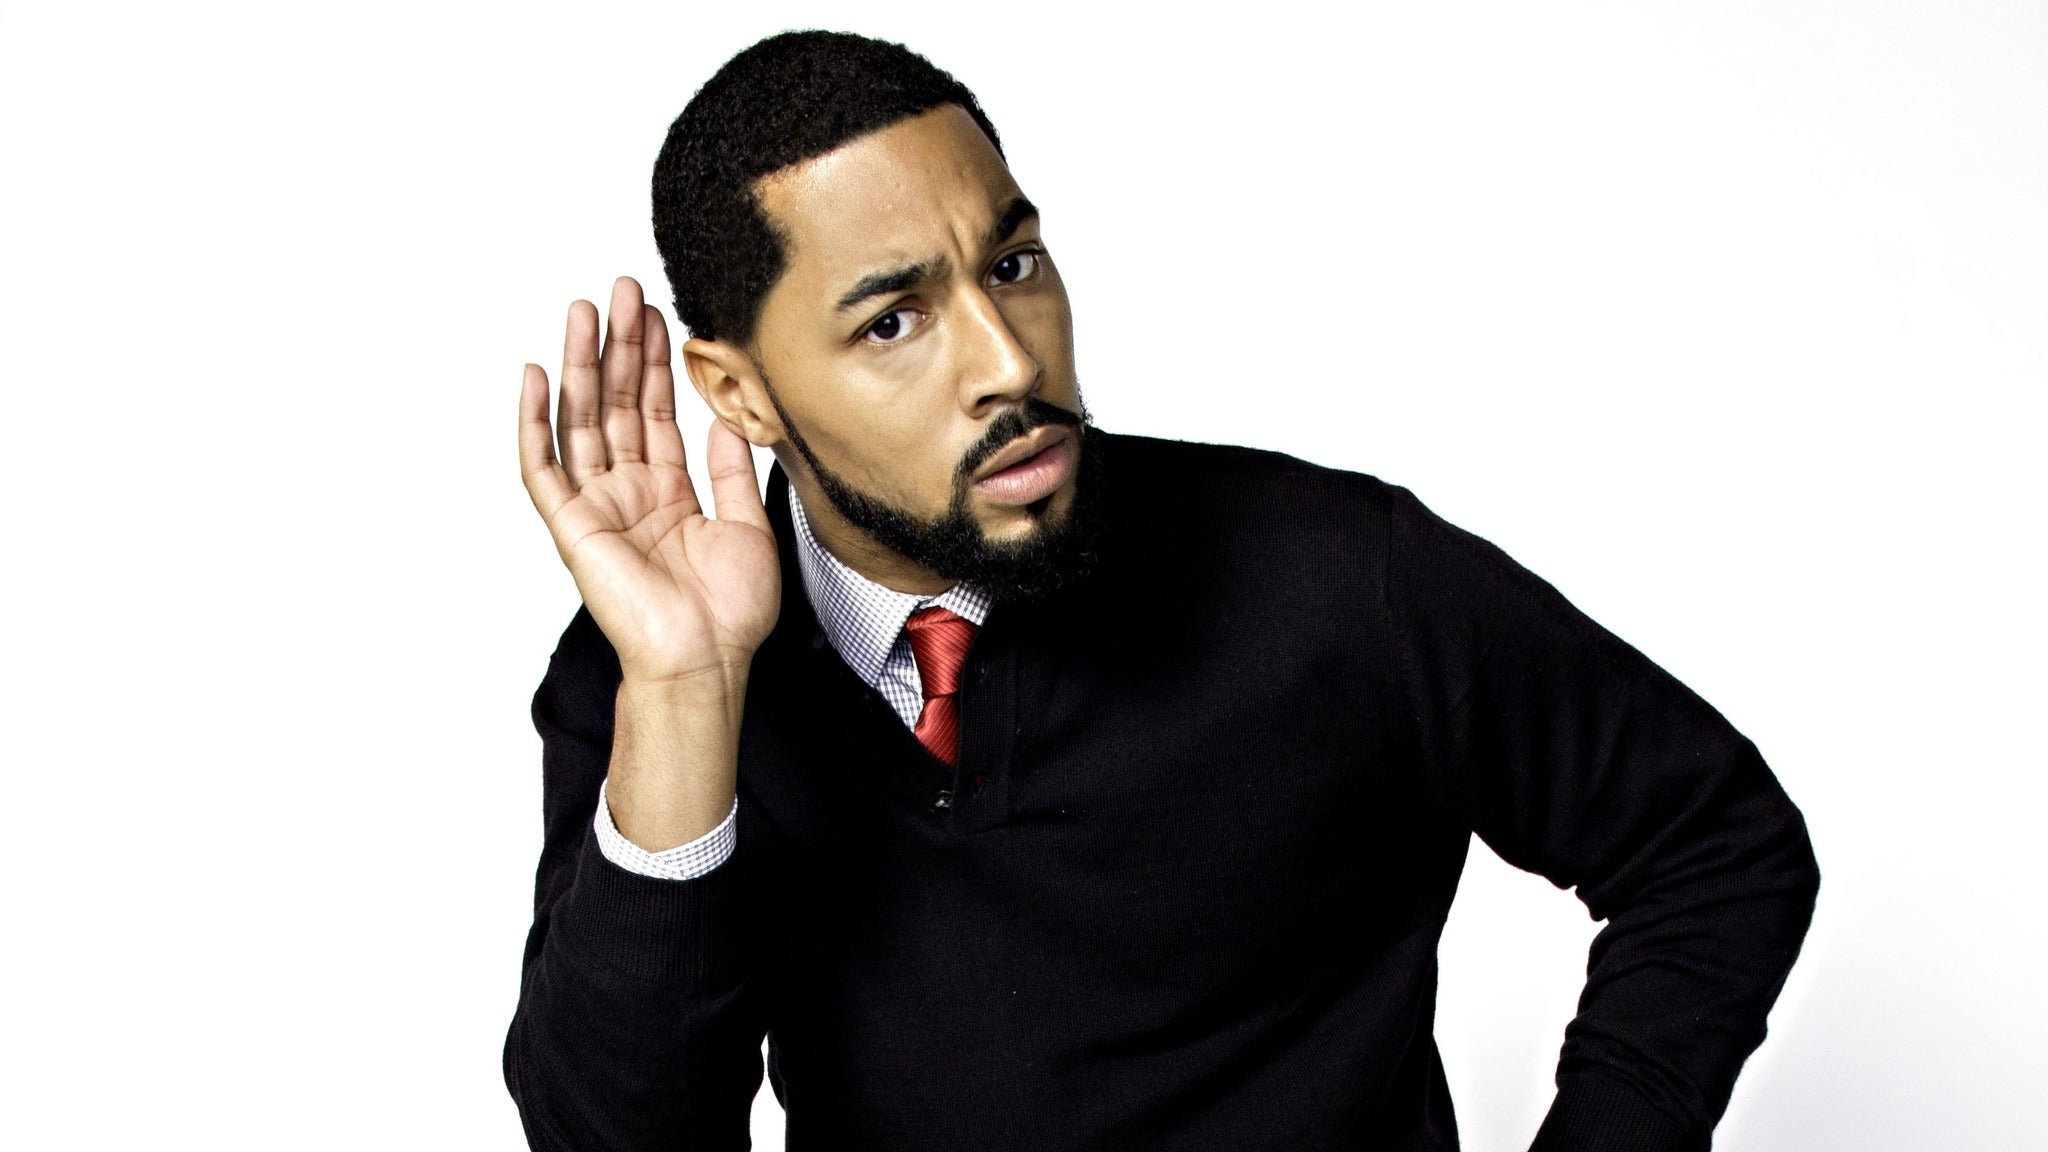 CoMo Comedy Club Presents Tone Bell - 7:00 PM